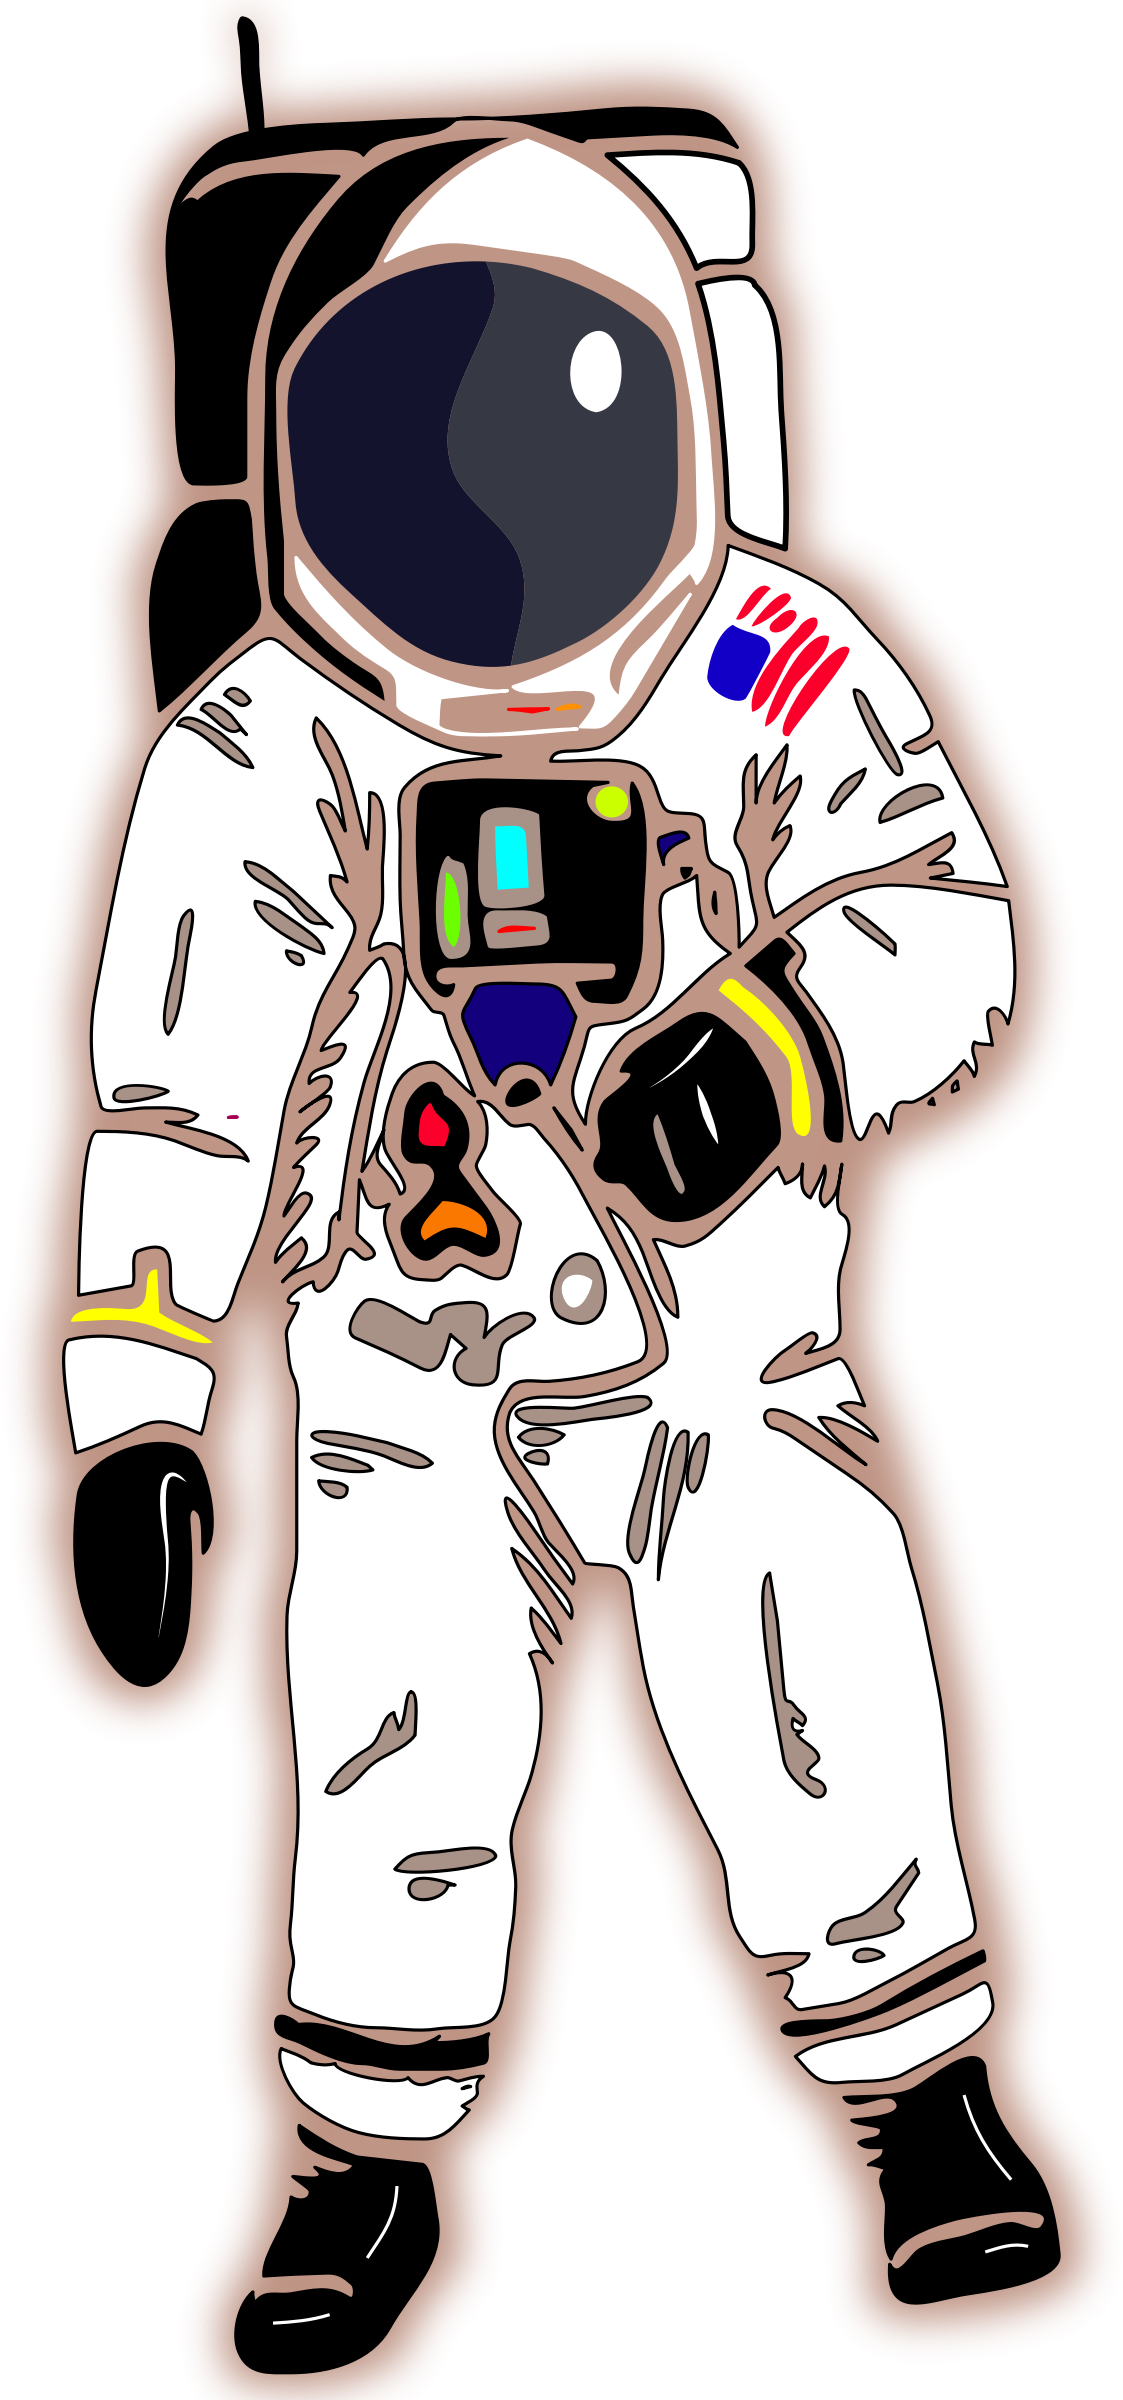 Astronaut png transparent. American icons free and